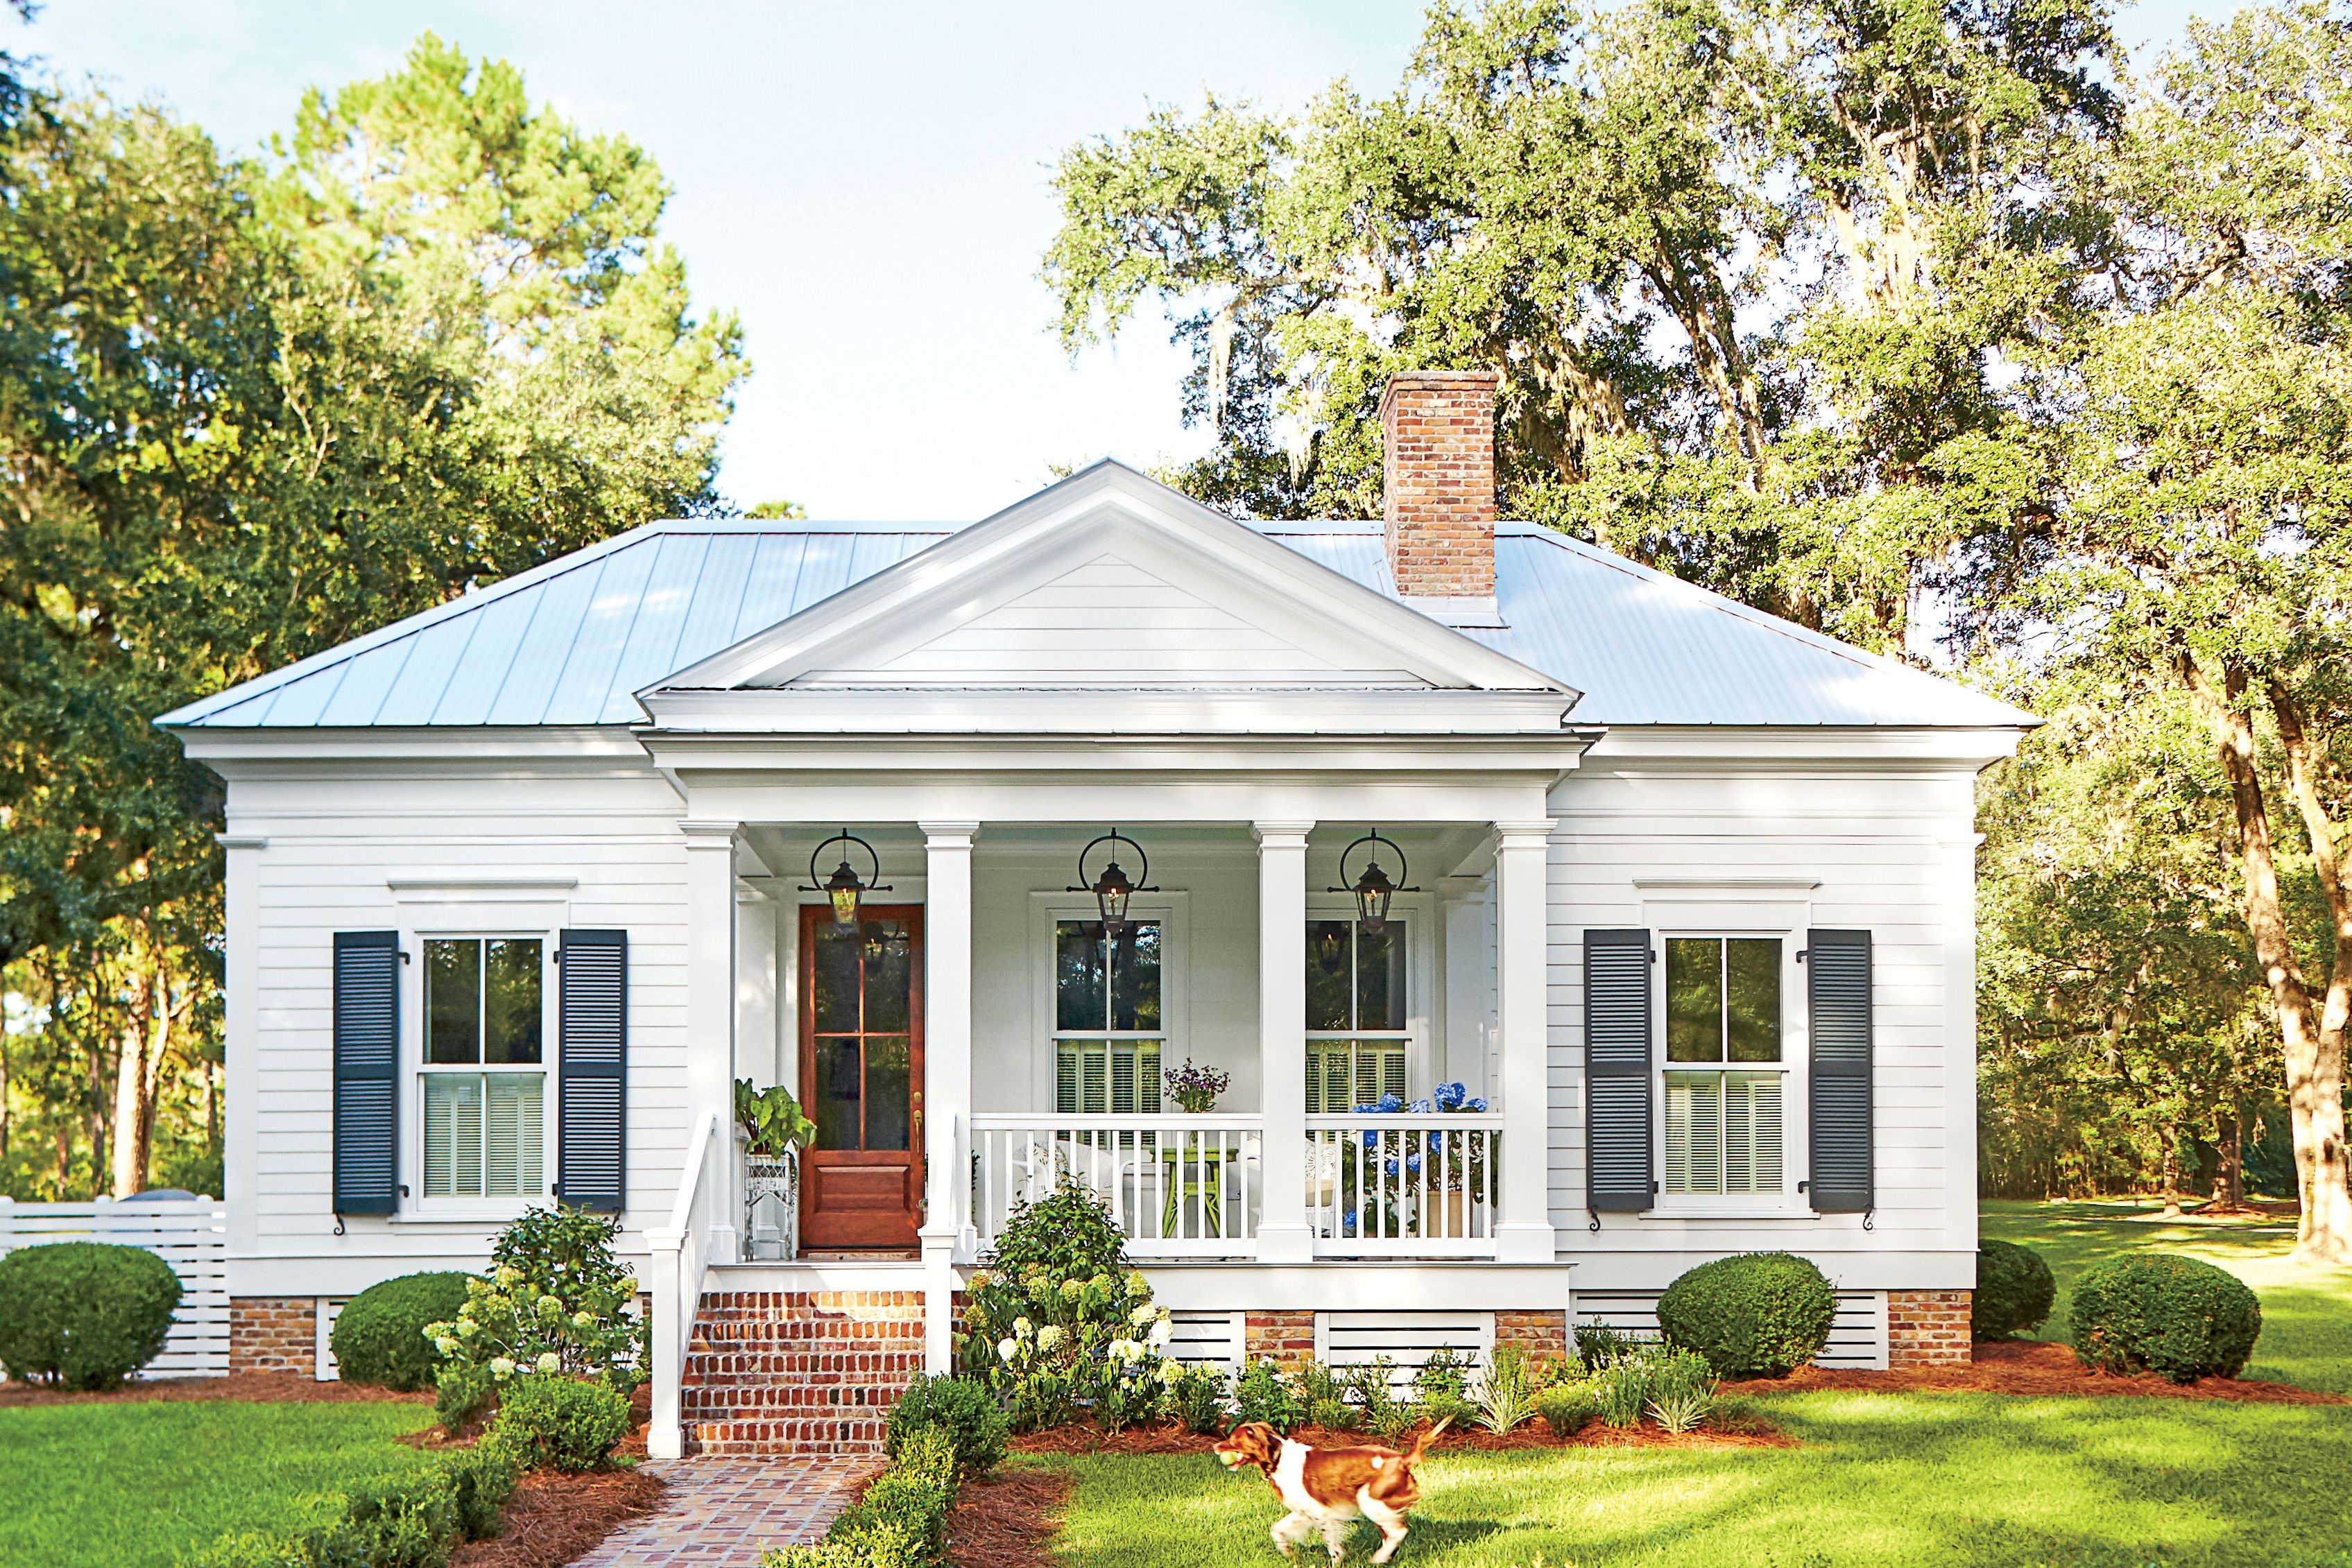 Brandon ingram florida cottage cottages pinterest for Southern cottage house plans with photos